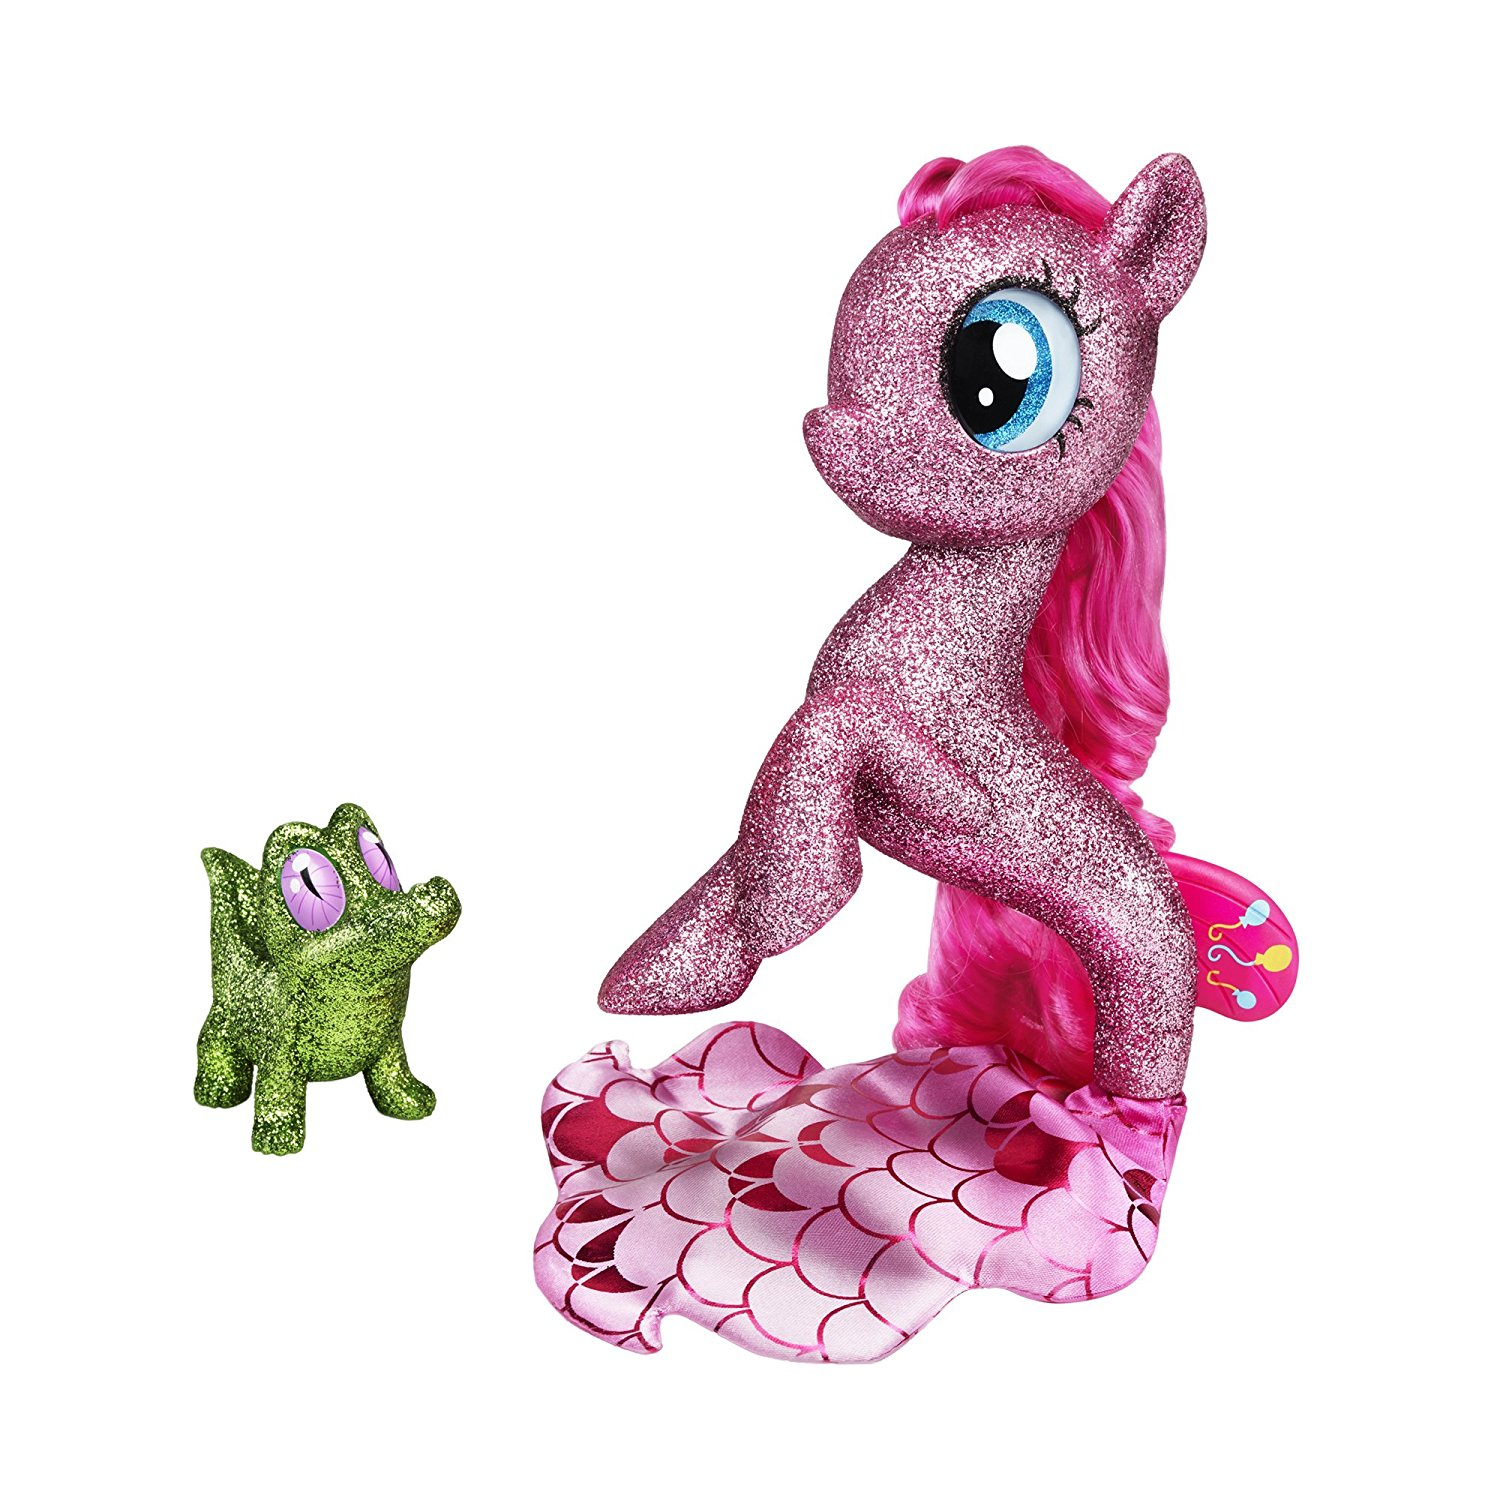 sparkly seapony twinke pony pinkie pie figure appears